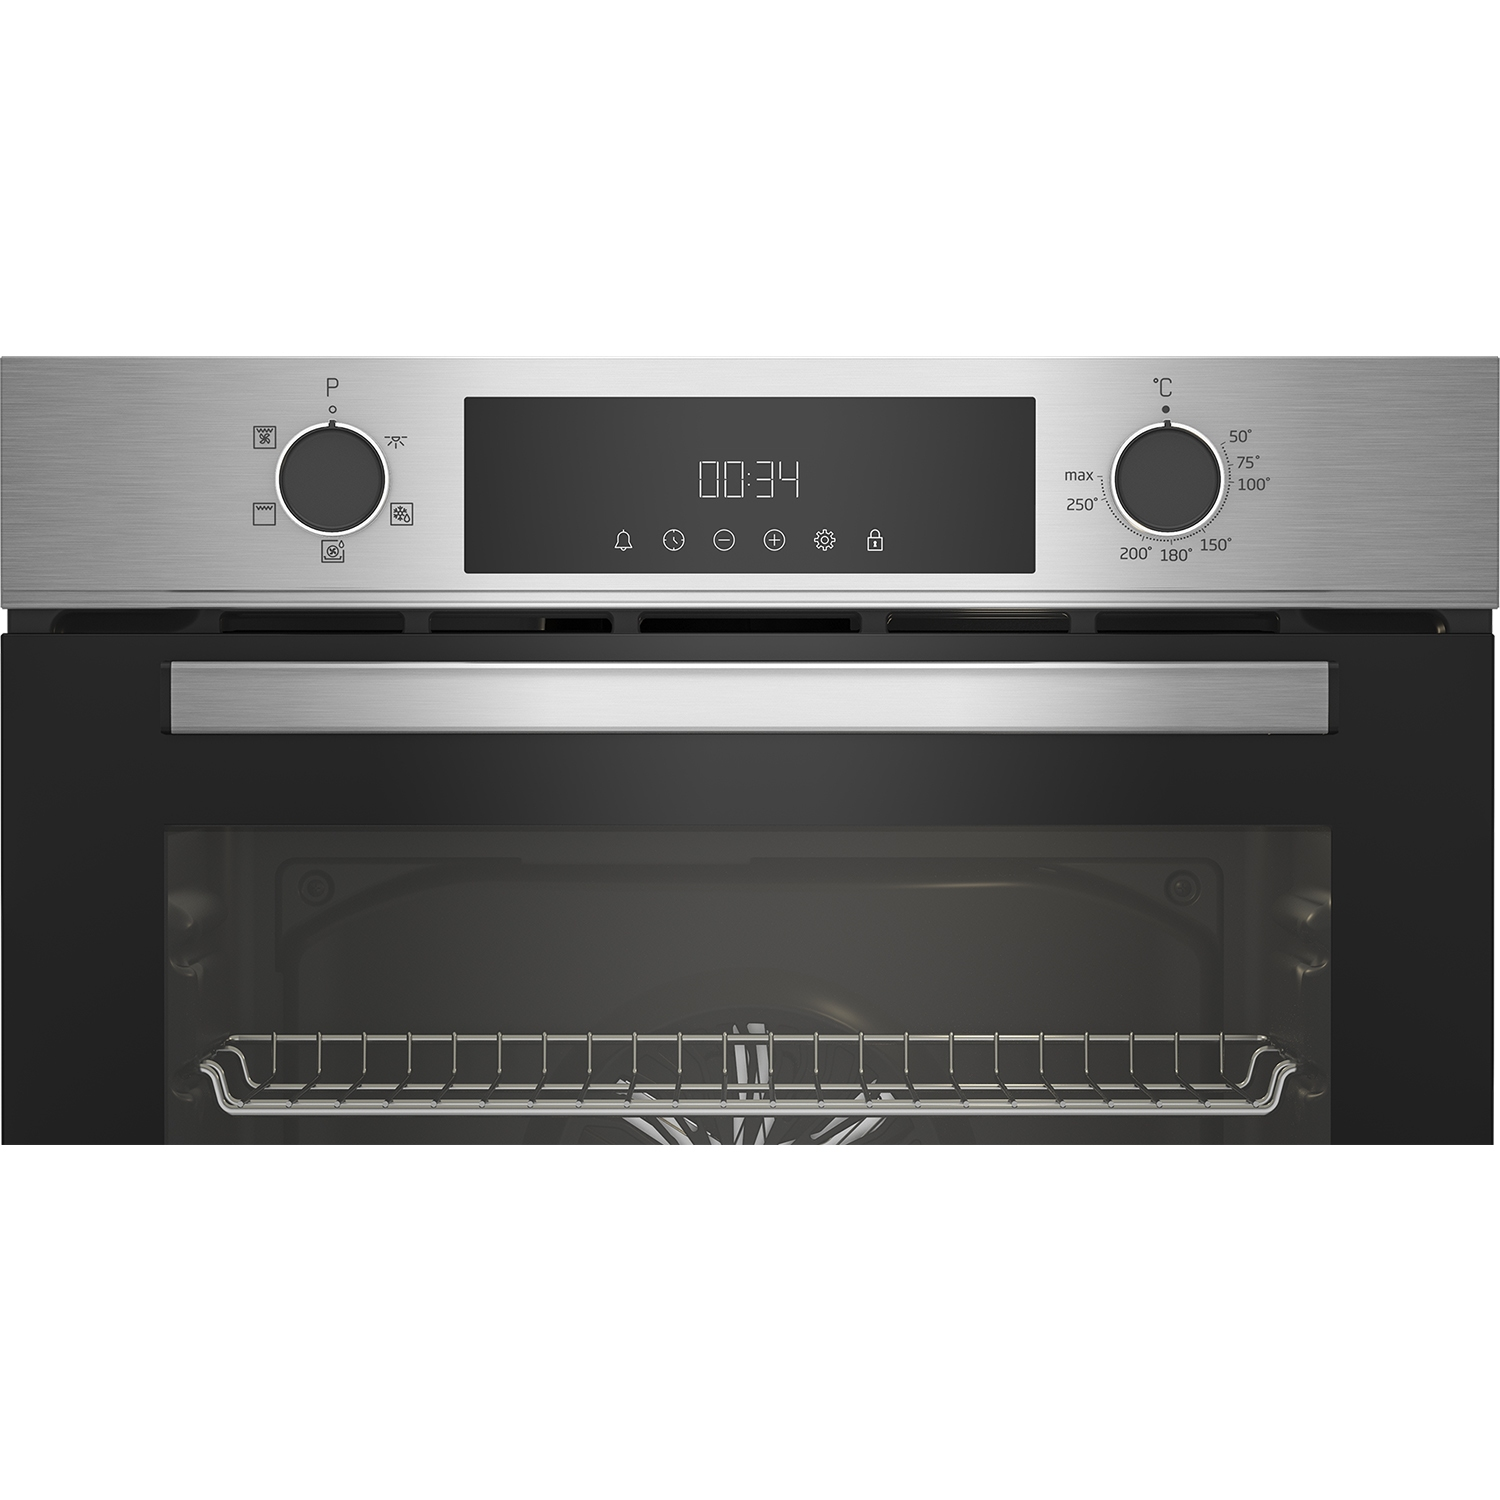 Beko CIFY81X AeroPerfect™ Built In Electric Single Oven - Stainless Steel - 3